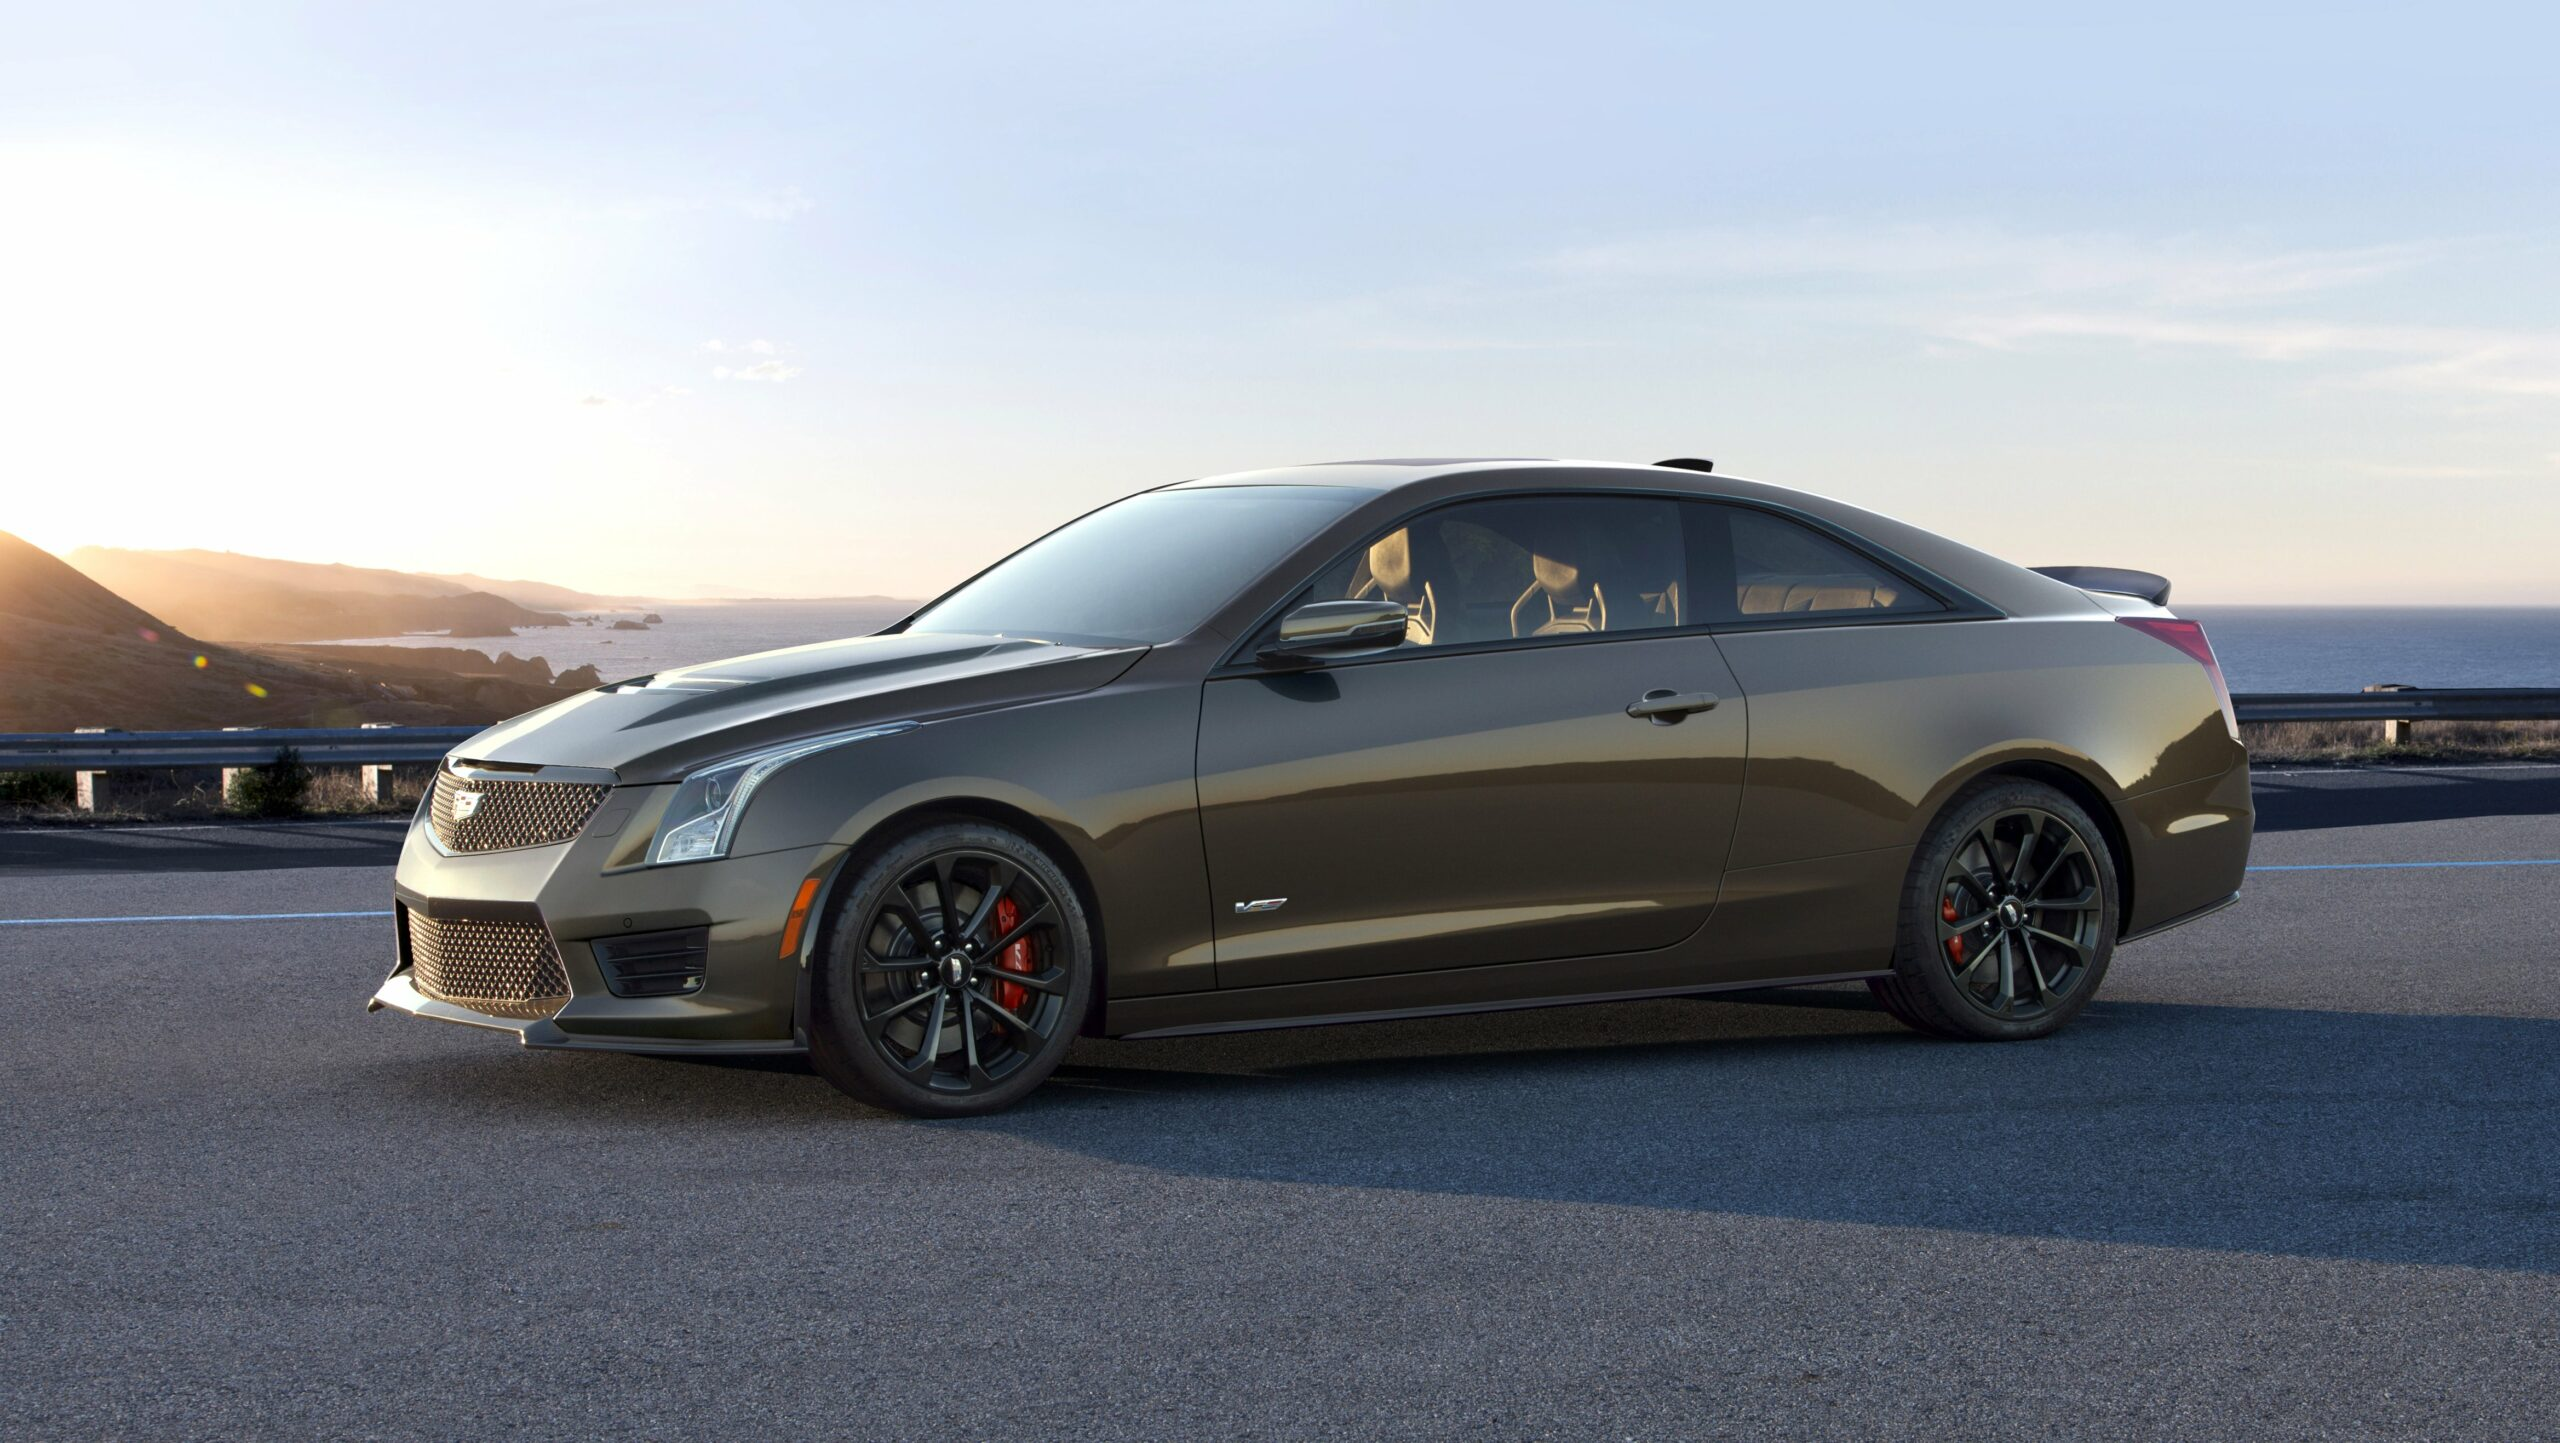 cadillac ats 2020 release date New Model and Performance